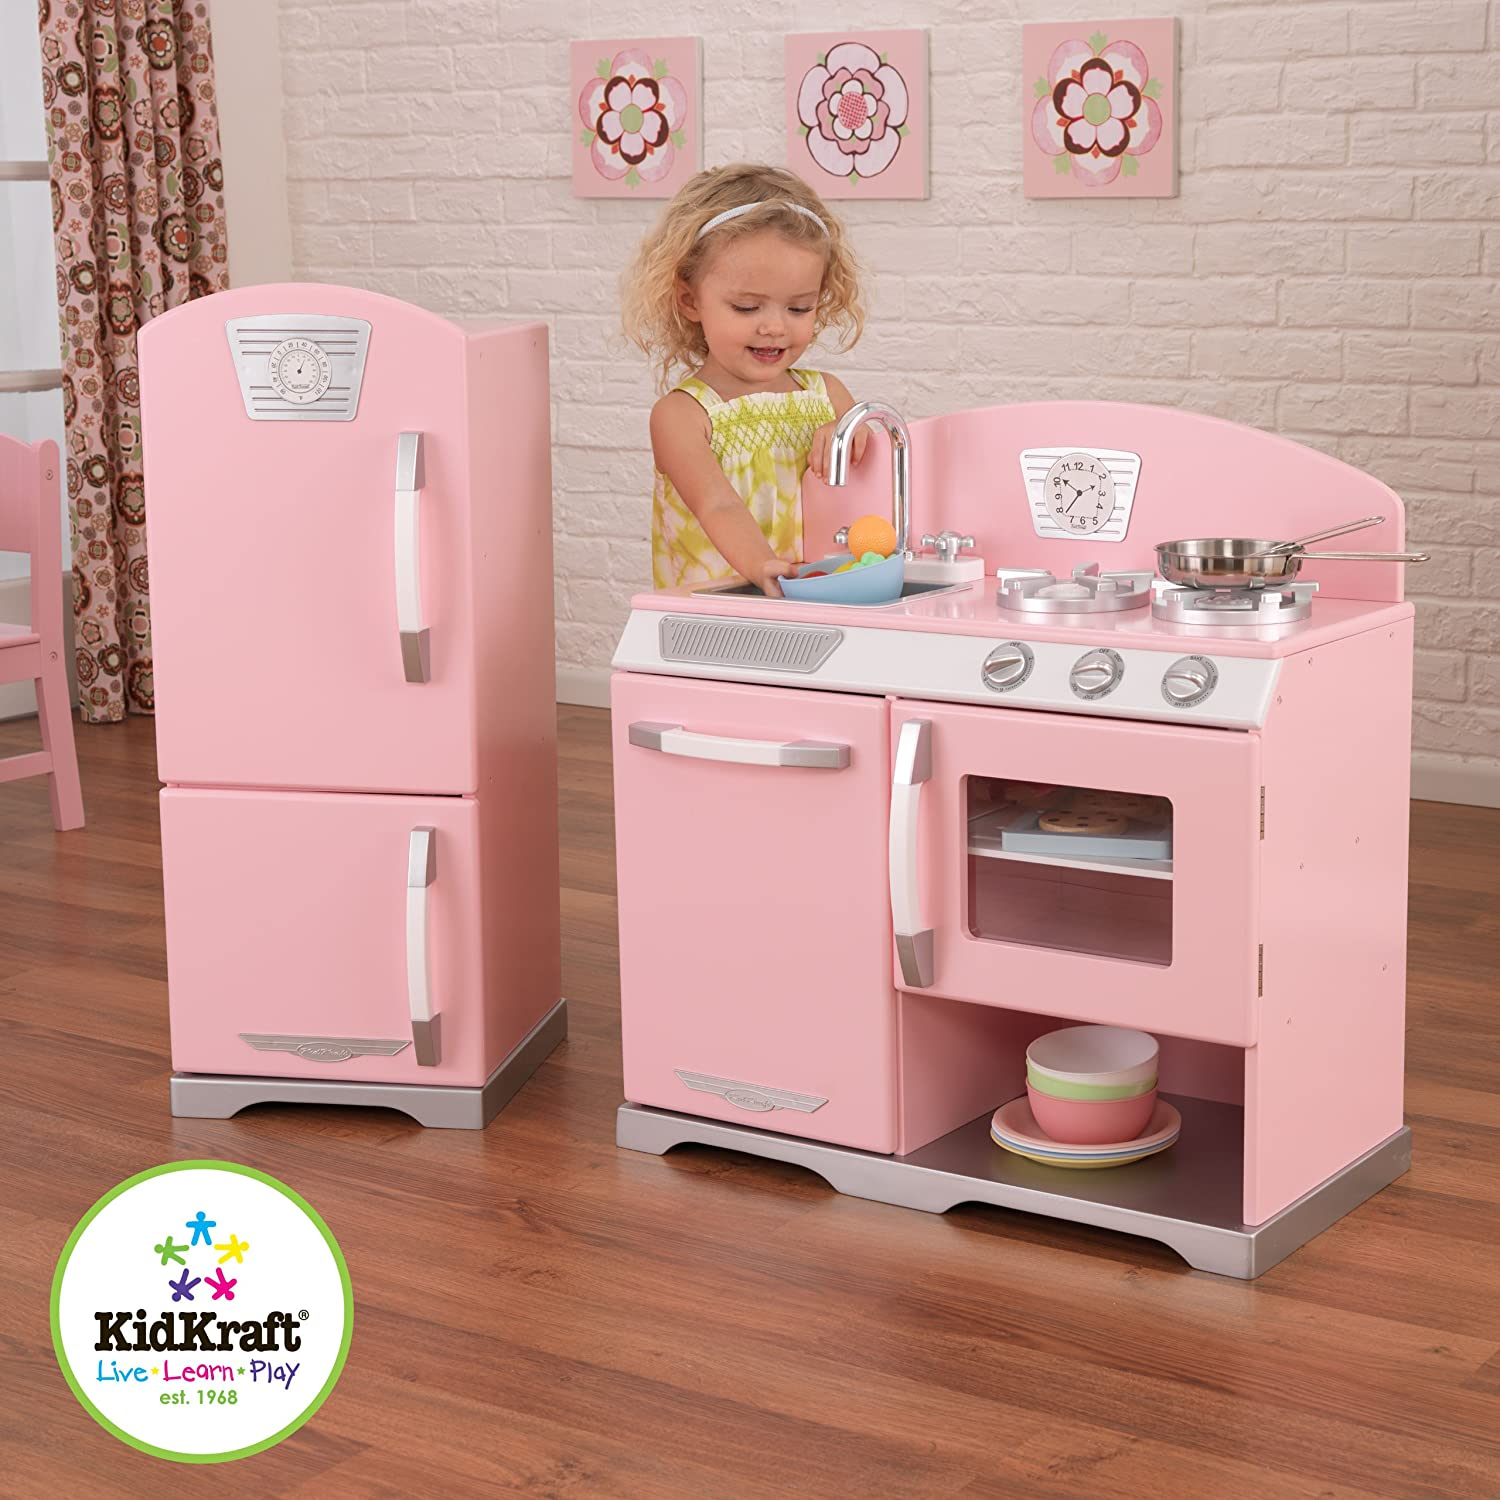 FieStund: Toddler Kitchen Set